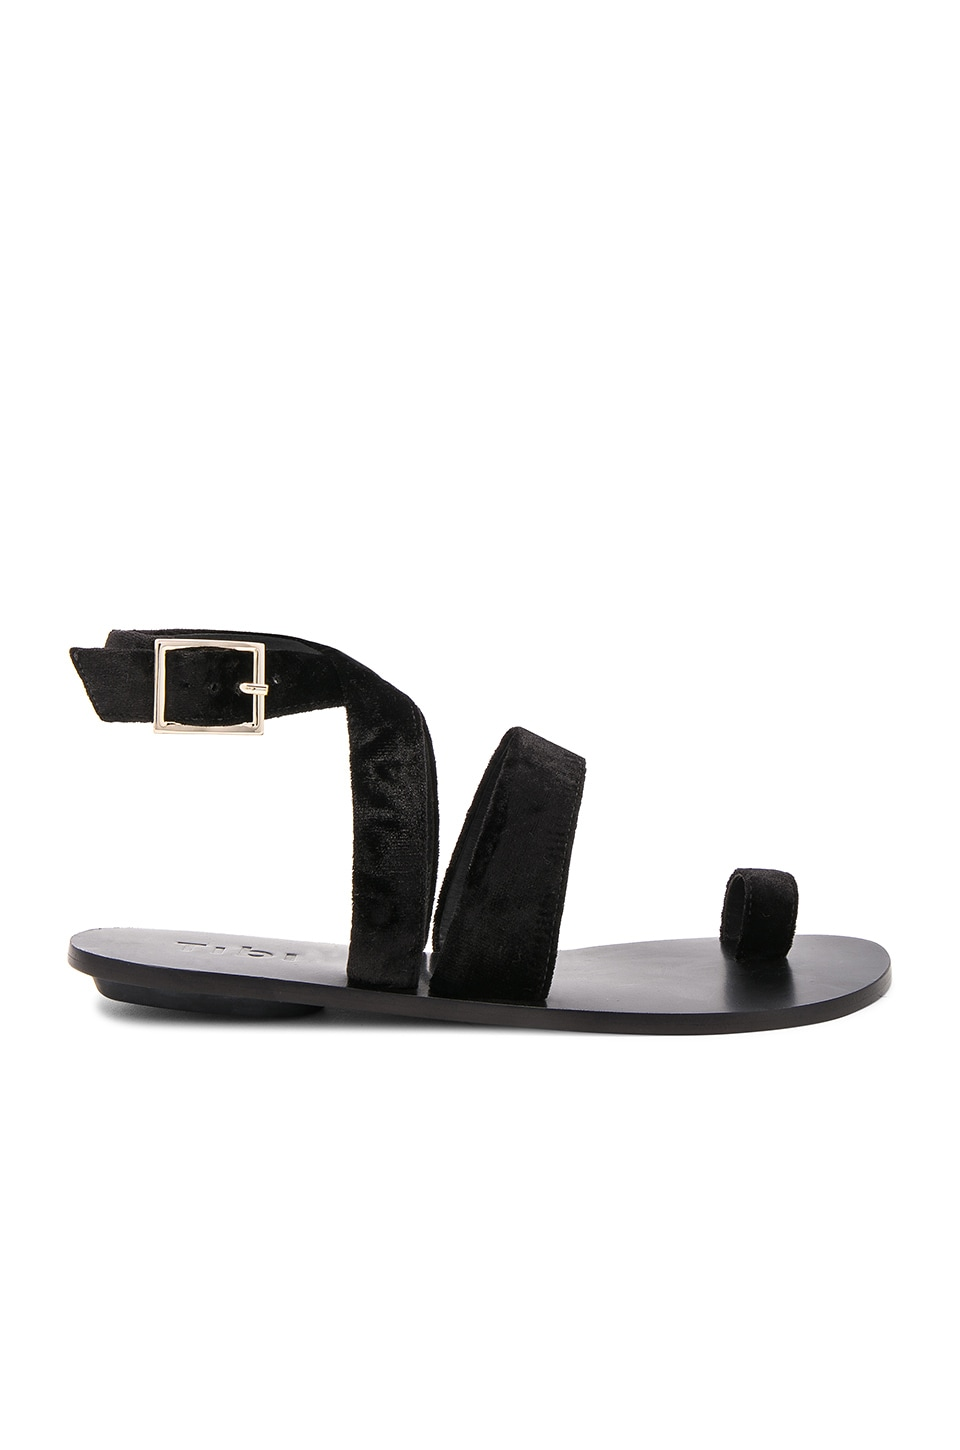 Hallie Sandal by Tibi